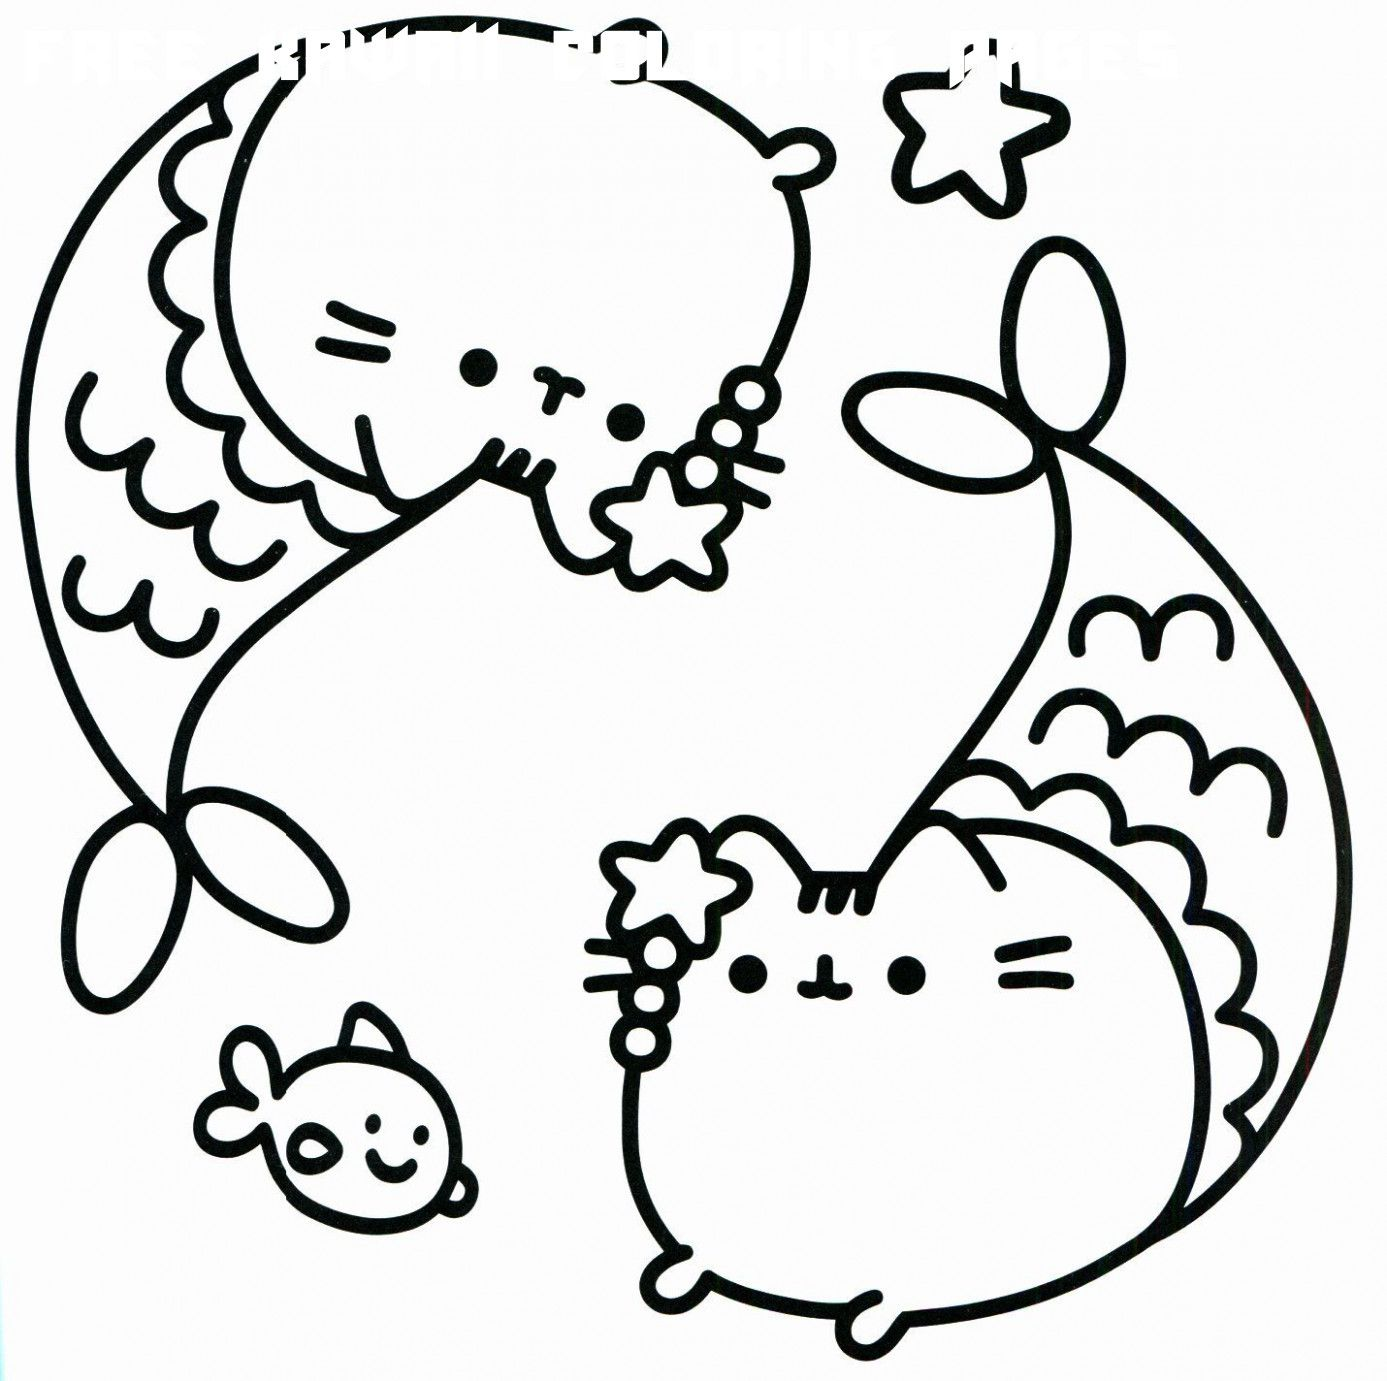 6 Free Kawaii Coloring Pages In 2020 Pusheen Coloring Pages Unicorn Coloring Pages Hello Kitty Colouring Pages